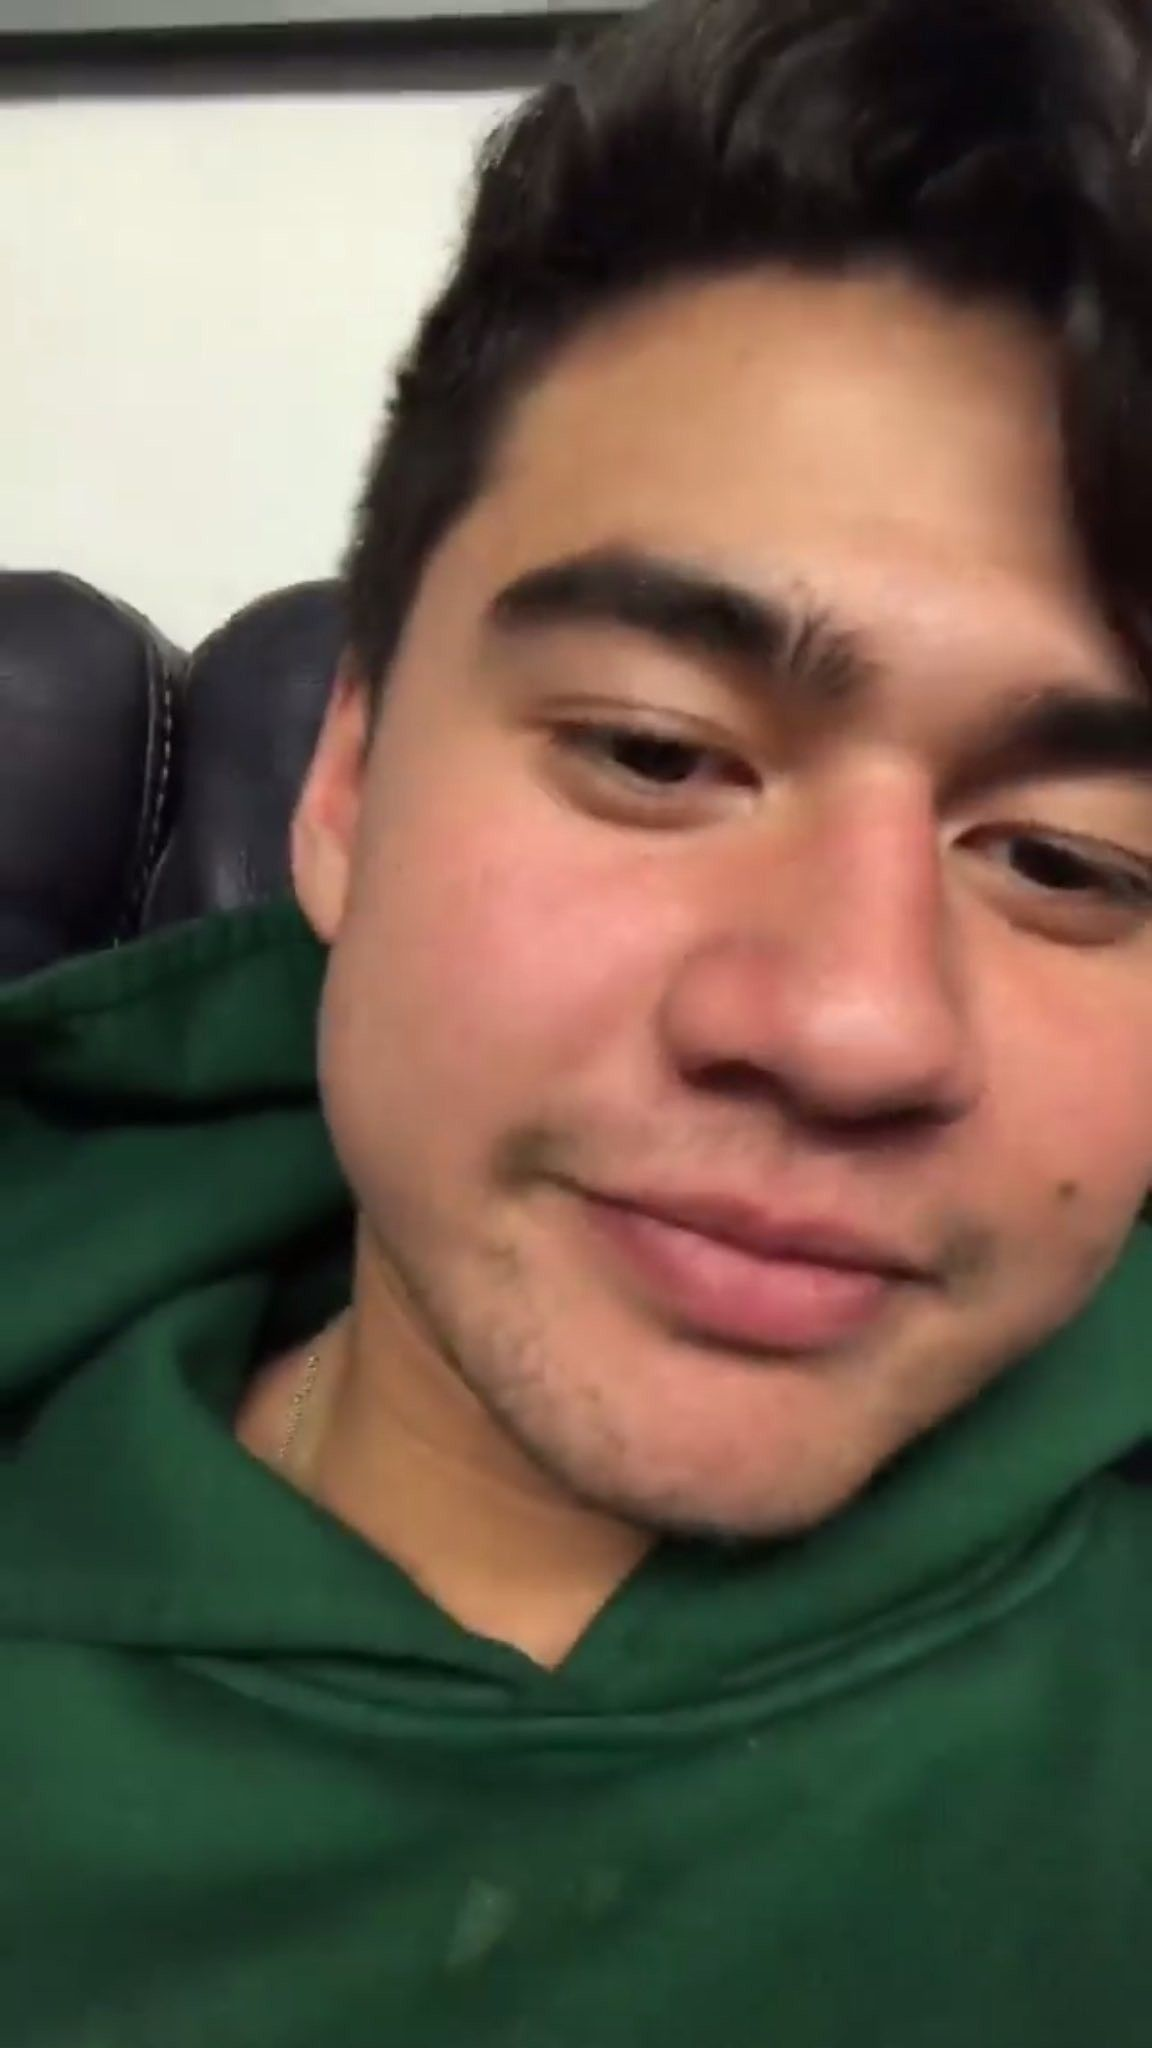 Calum hood calum hood pinterest calum hood hoods and